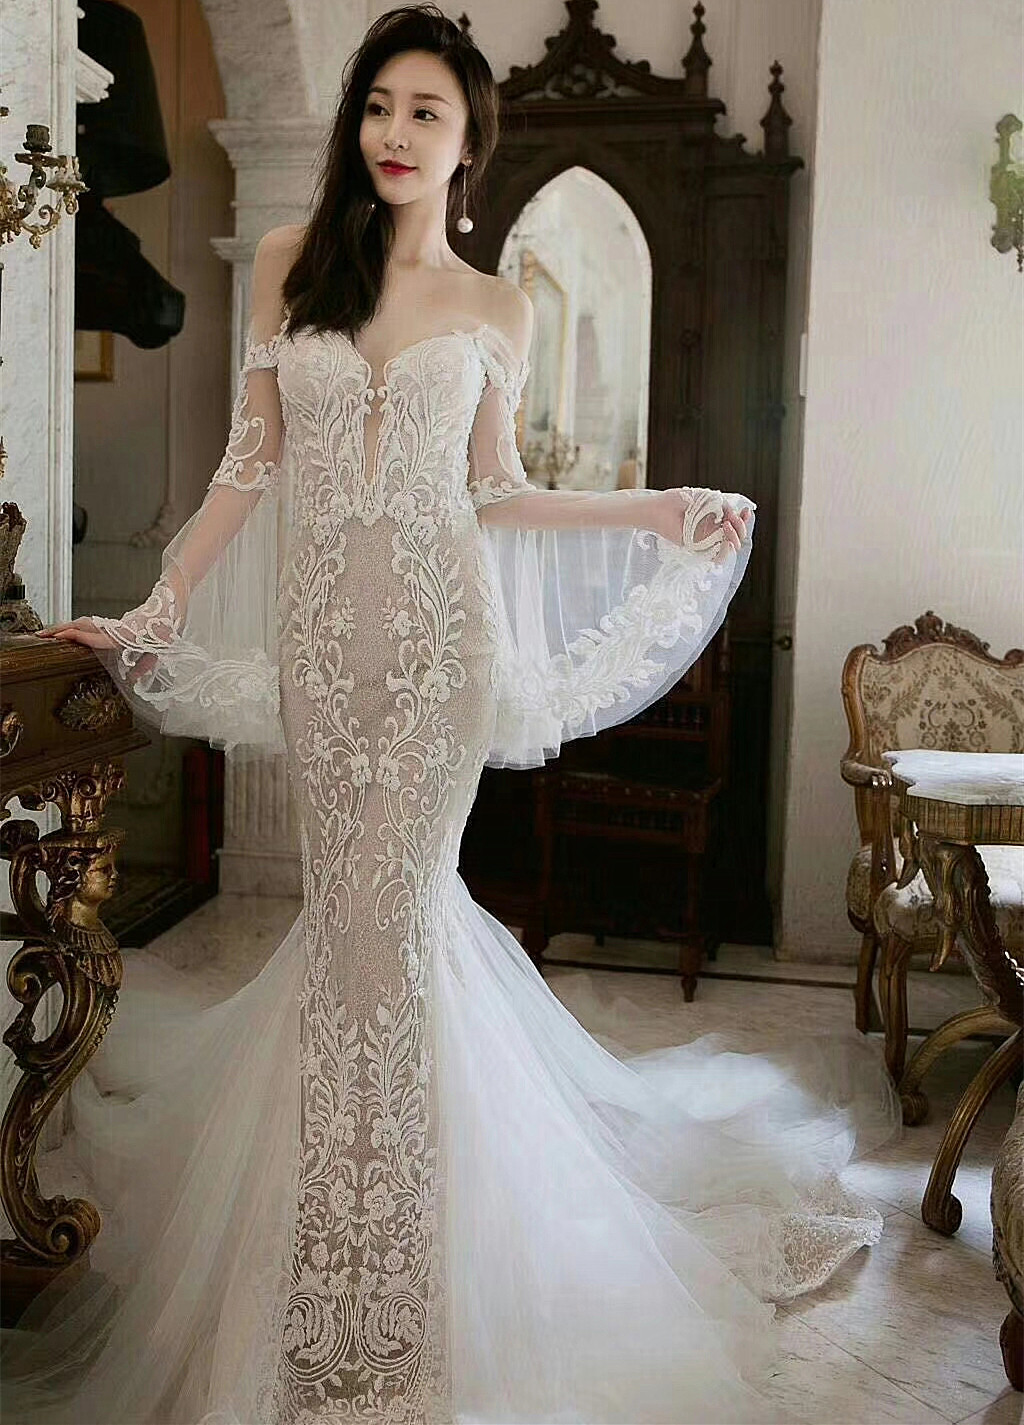 Image 3 - Free Shipping Imports White Sequins Embroidered Mesh Lace Fabric,  Lace Wedding Dress Fashion Wedding Decoration Fabric RS1110Fabric   -